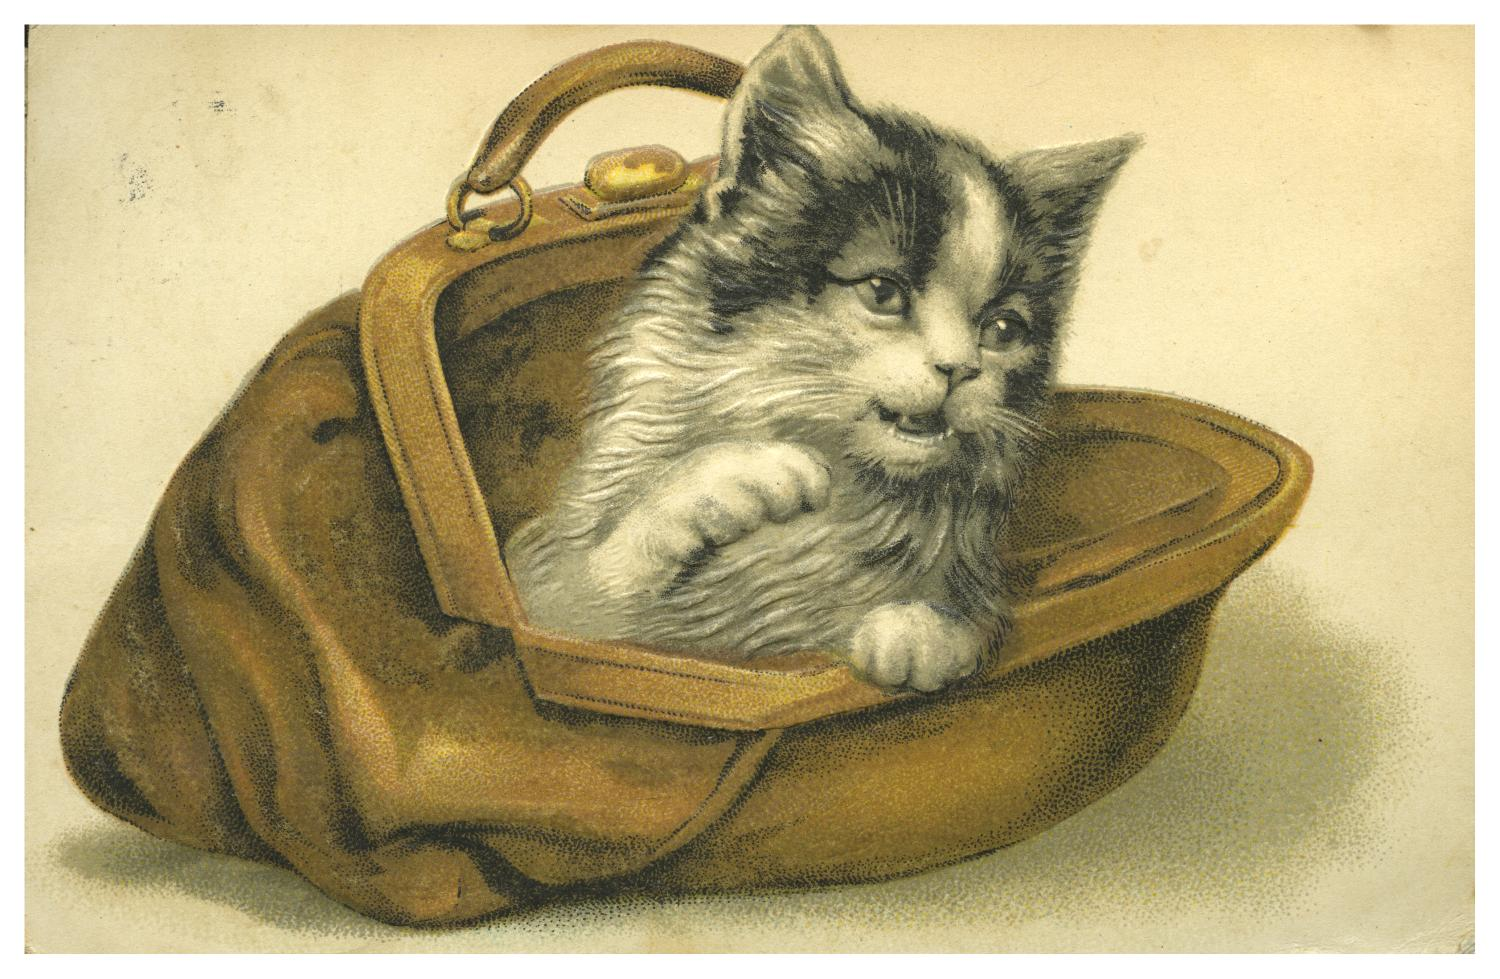 [Fluffy Cat in a Handbag]                                                                                                      [Sequence #]: 1 of 2